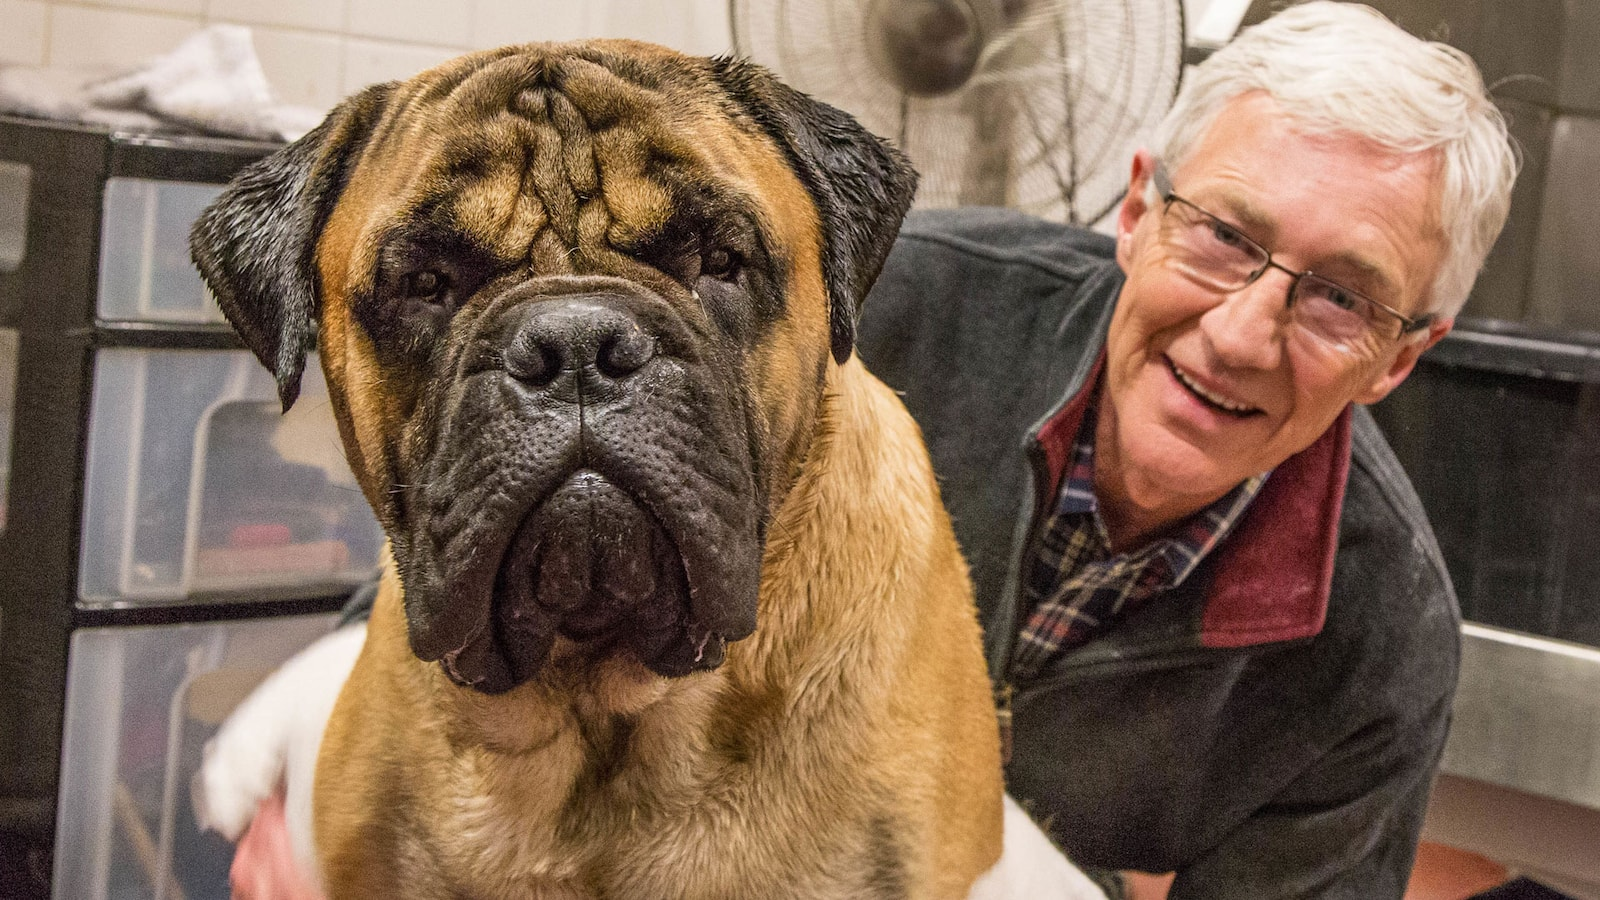 paul-ogrady-for-the-love-of-dogs